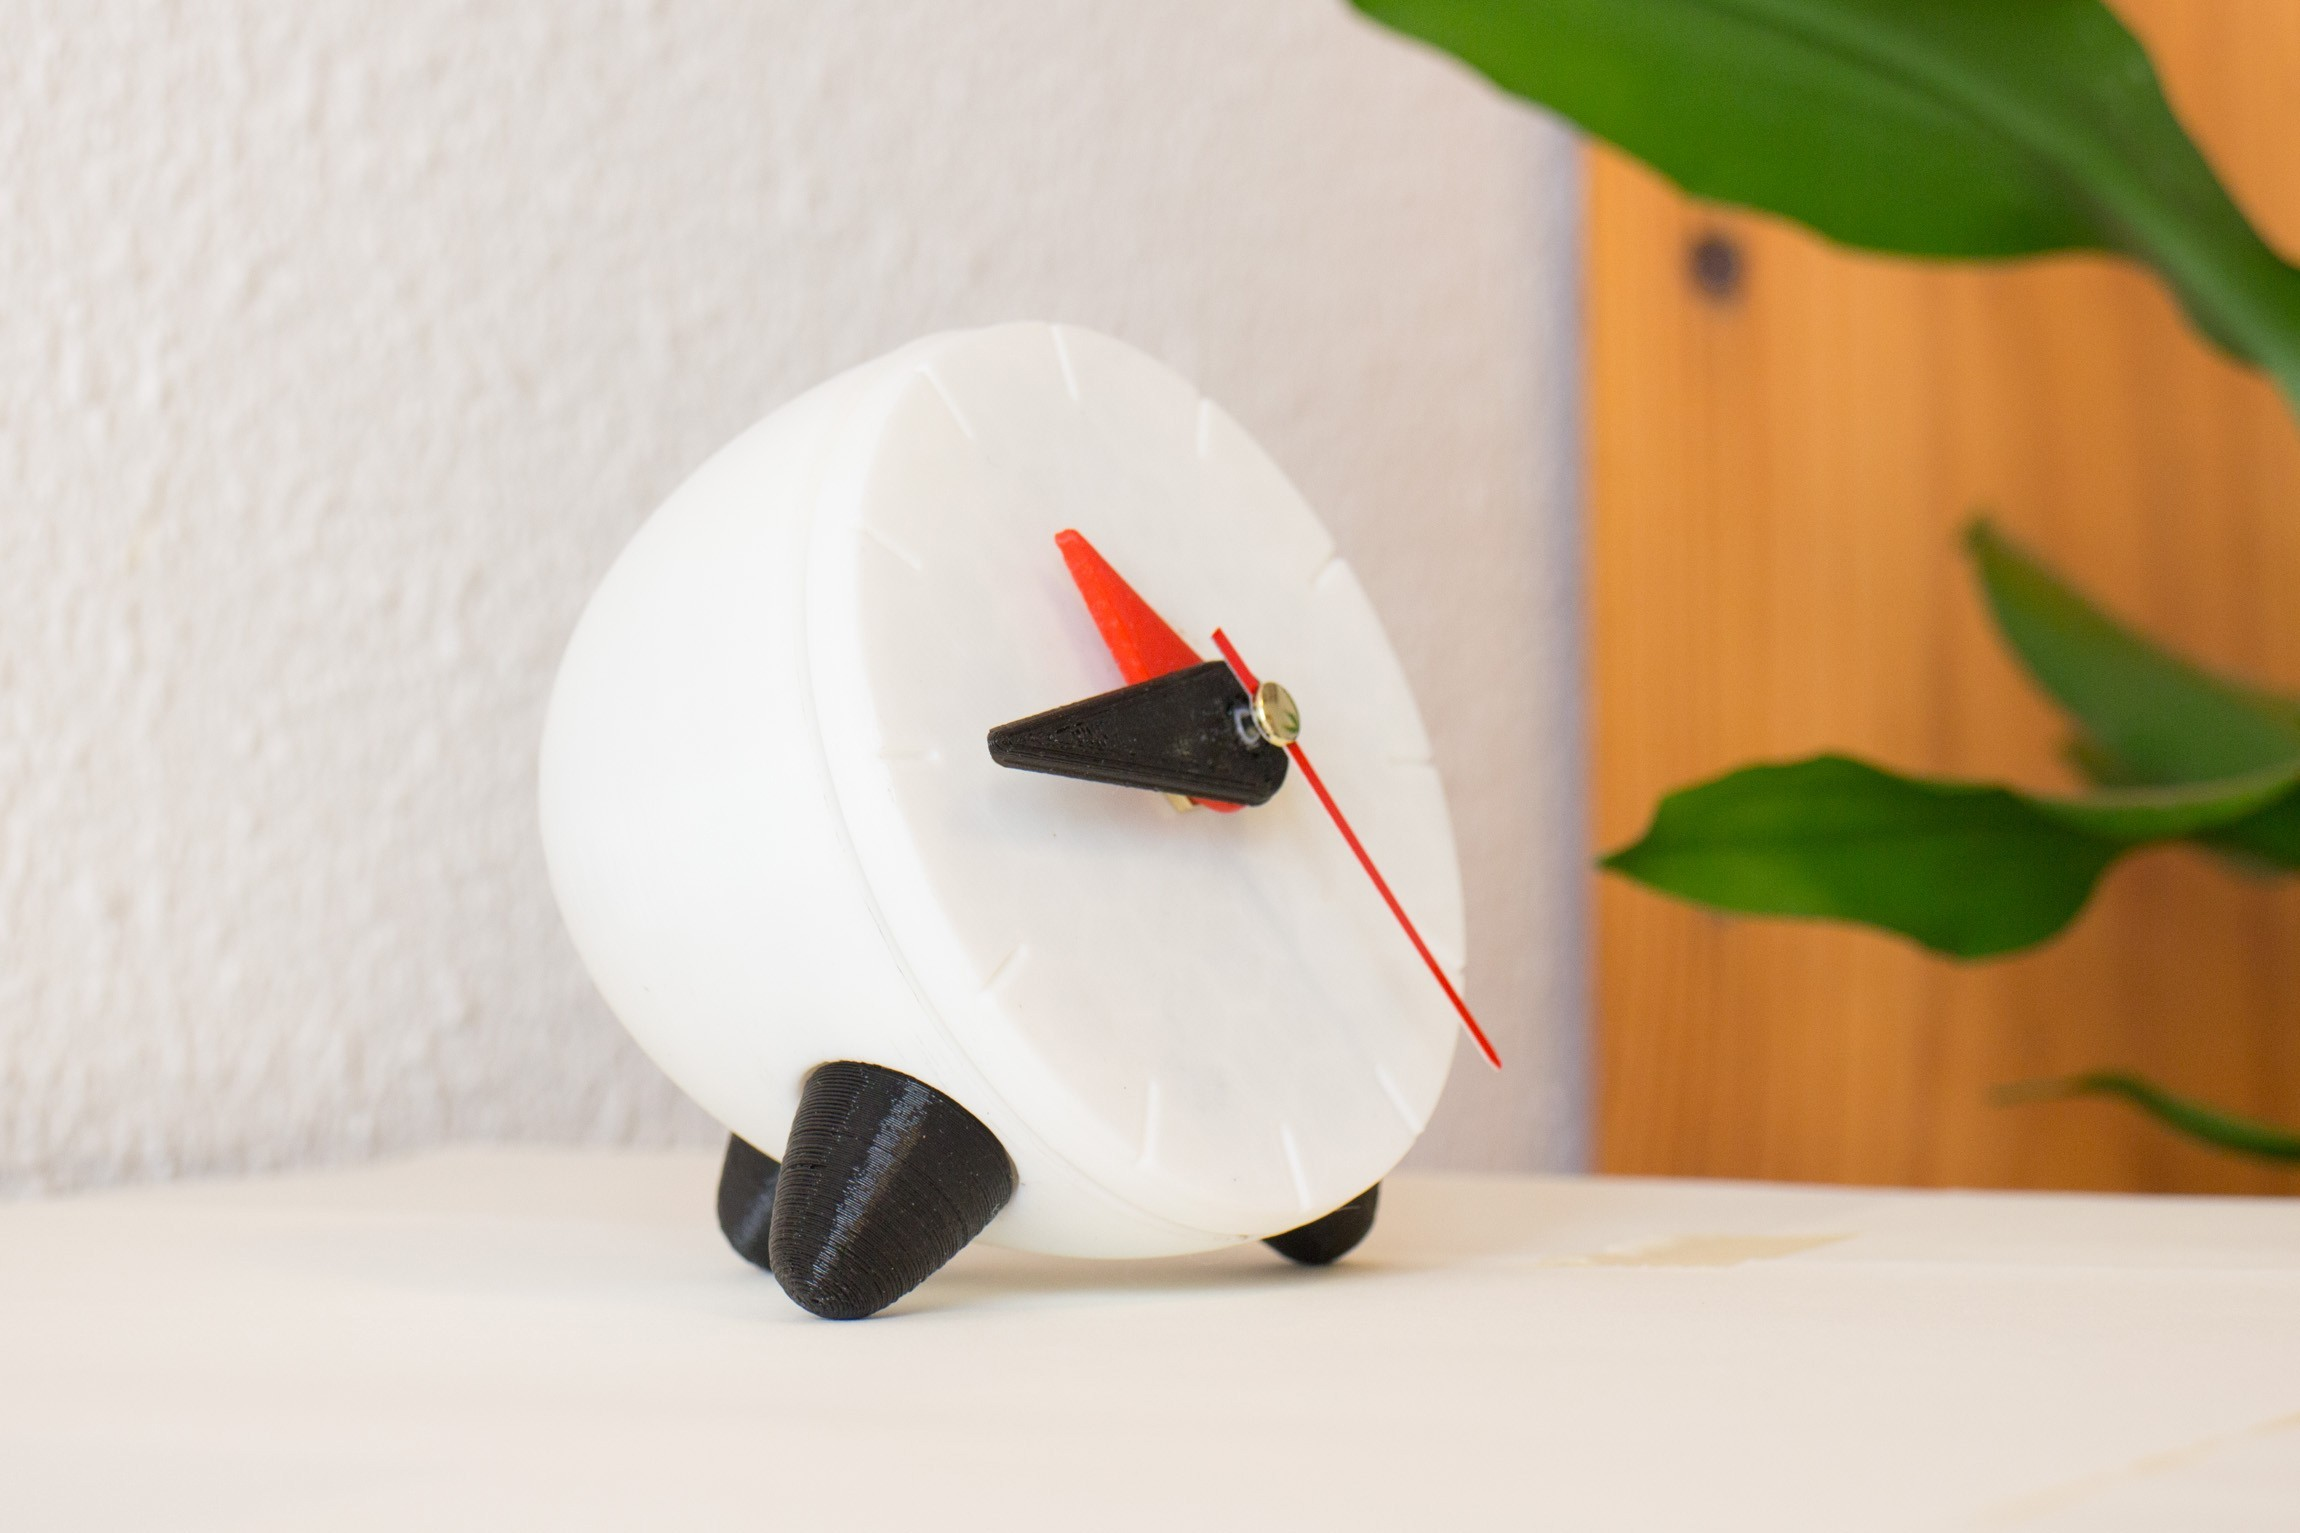 Thingiverse featured.jpg Download free STL file Functional Desktop/Bedside Clock • Model to 3D print, TonyLarsson